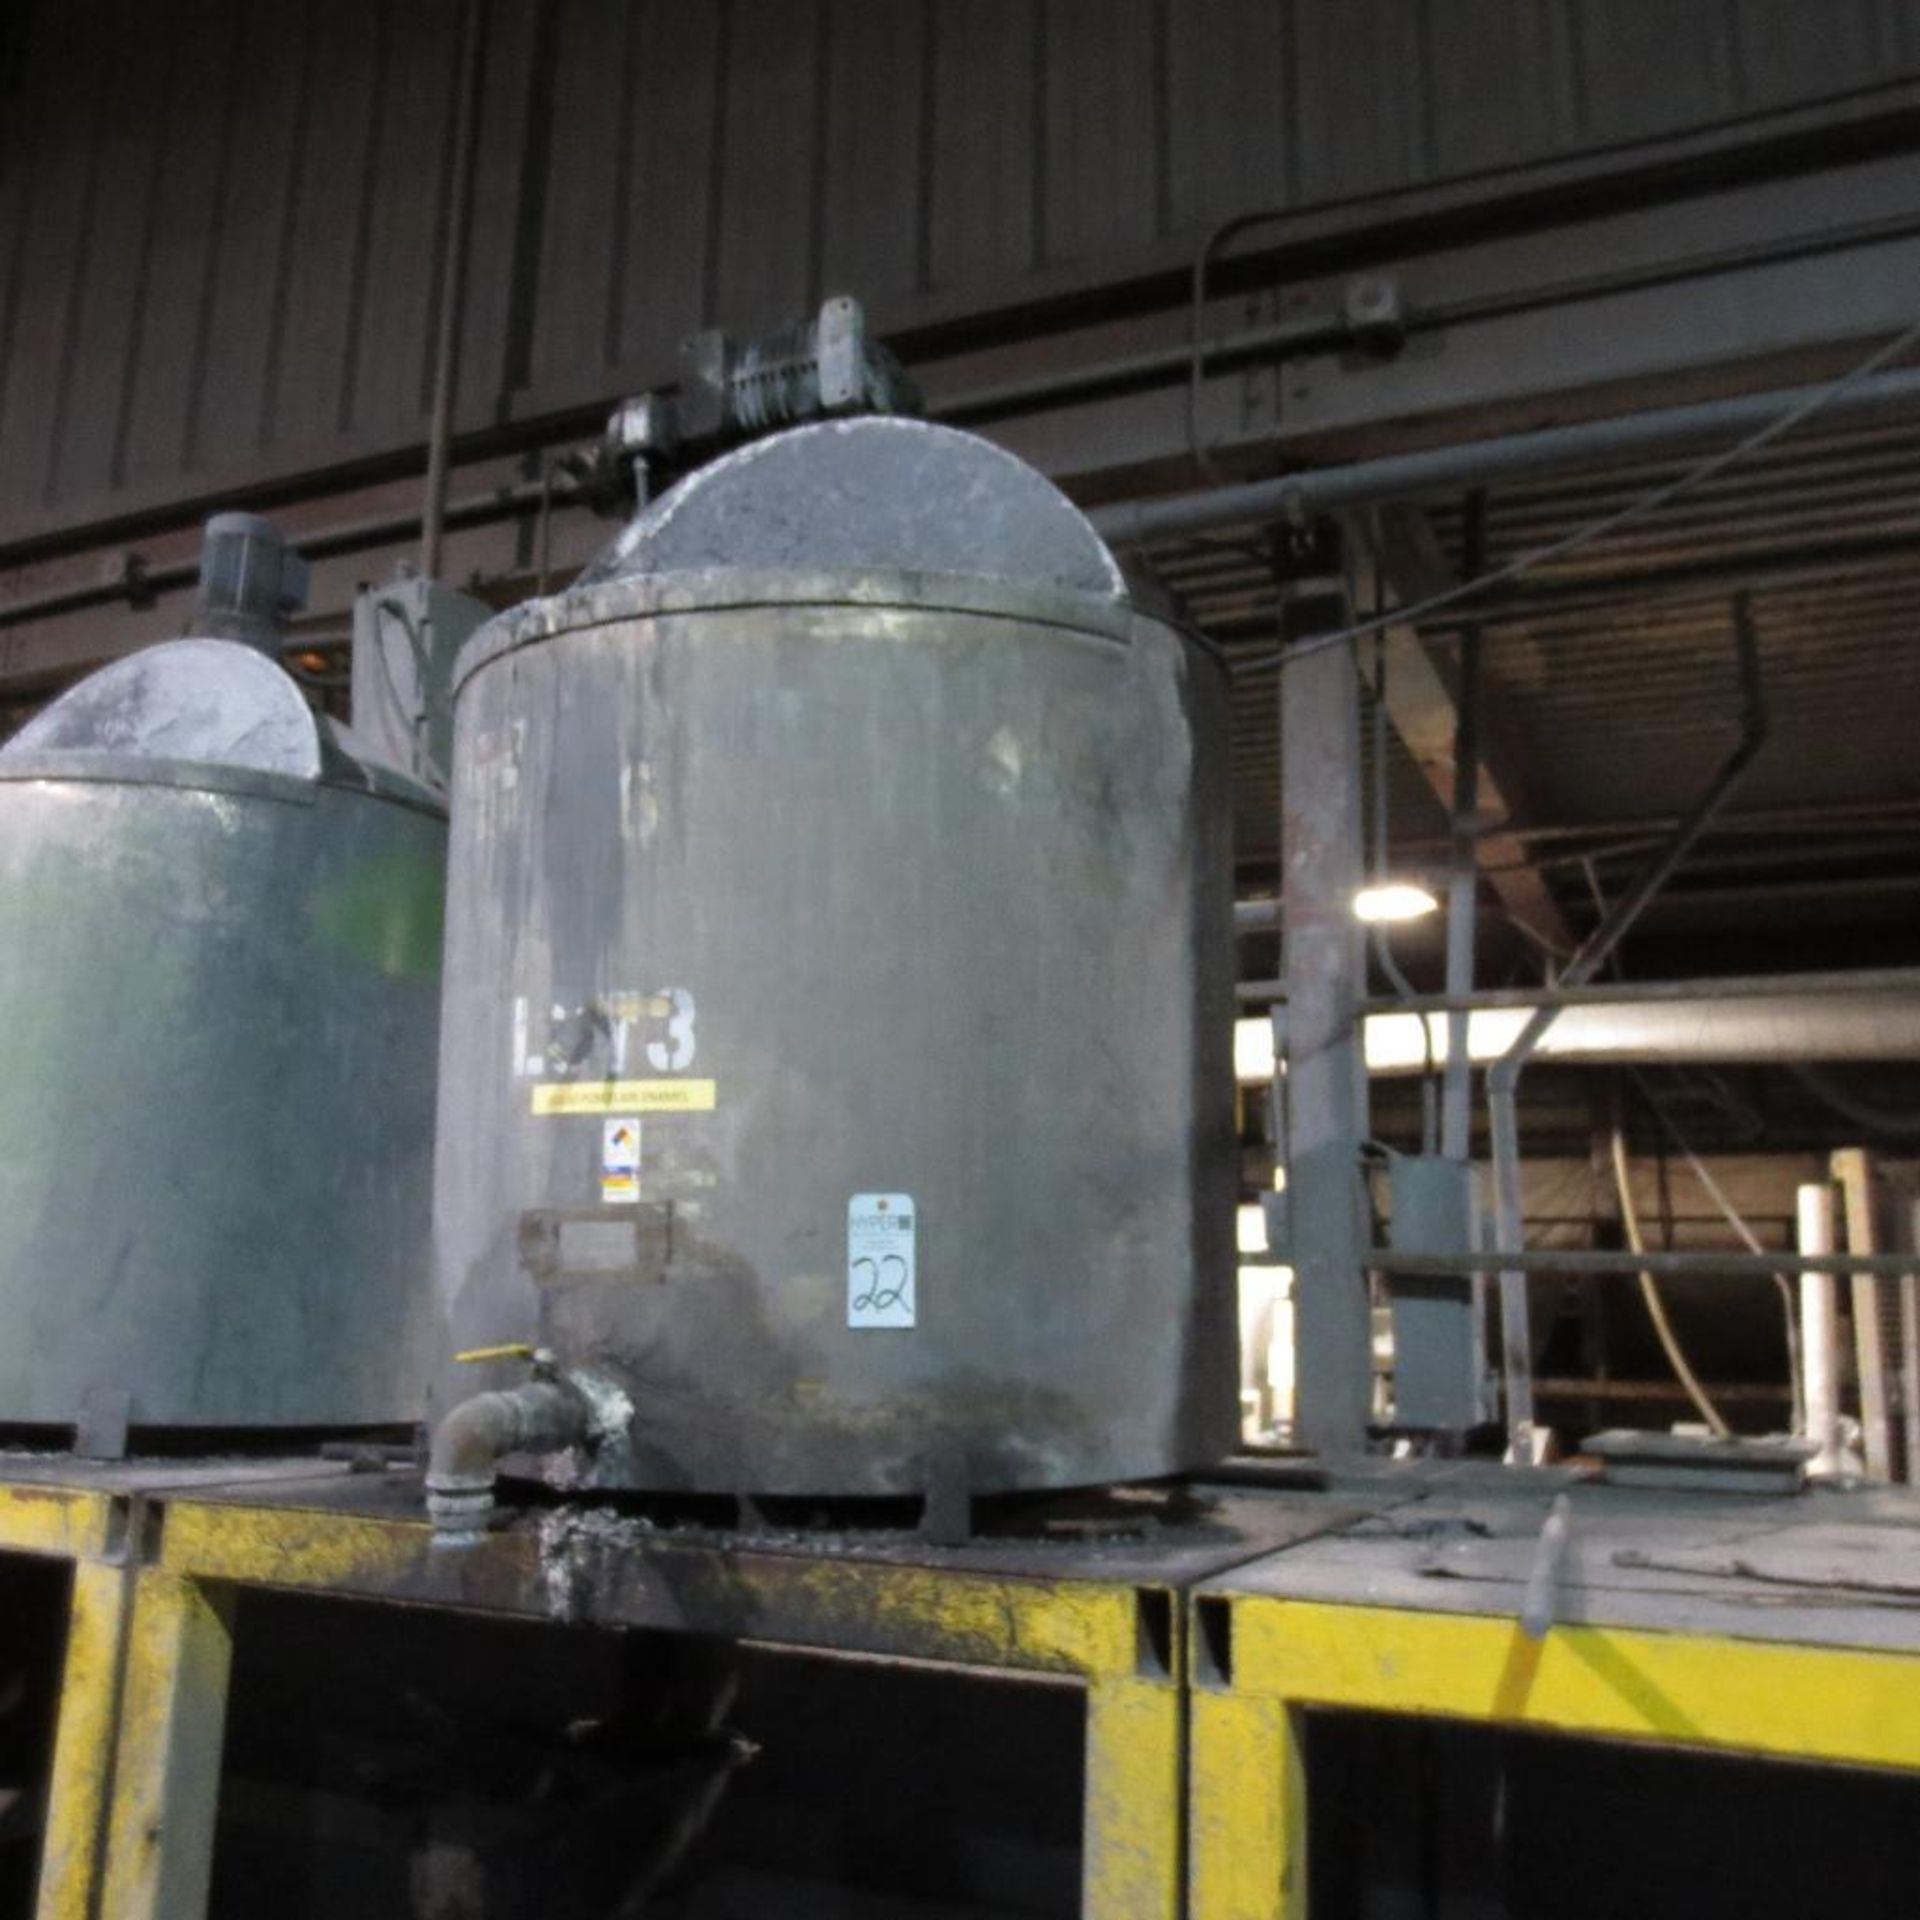 """Lot 22 - (Est) 300 Gallon Stainless Steel Mixing Tank (Est) 46"""" Dia. x 46"""" High, Top Hinged Cover, Bridge Typ"""